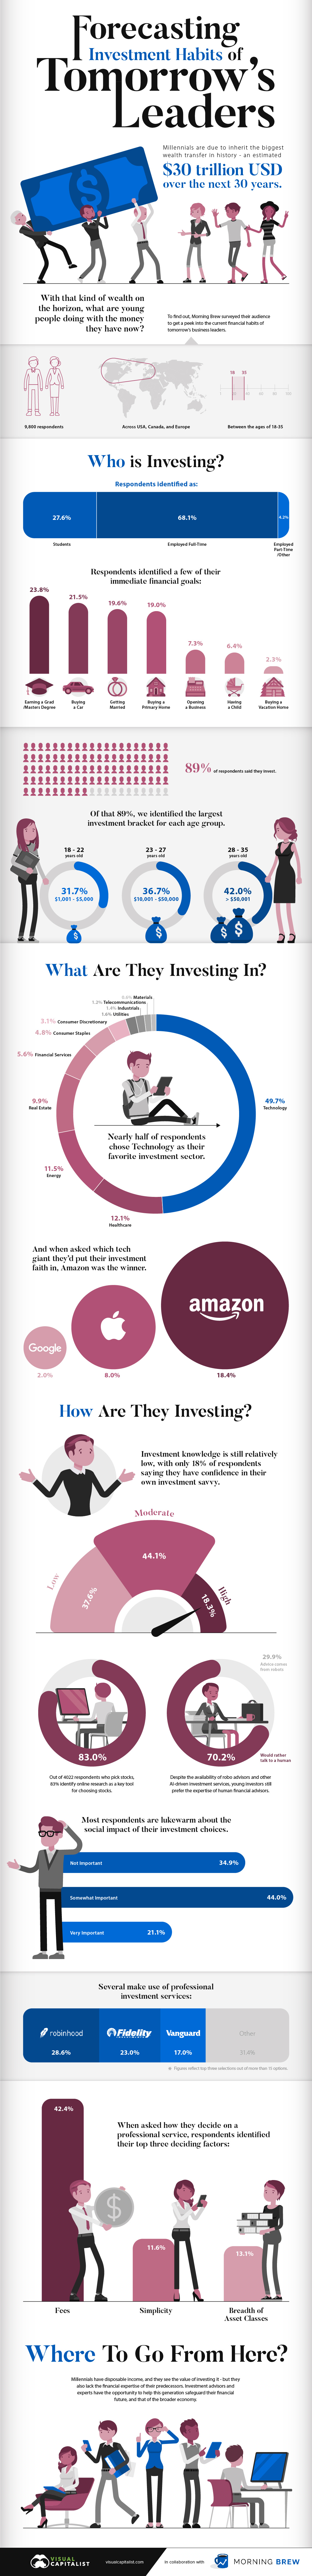 millennials-investing-habits-infographic